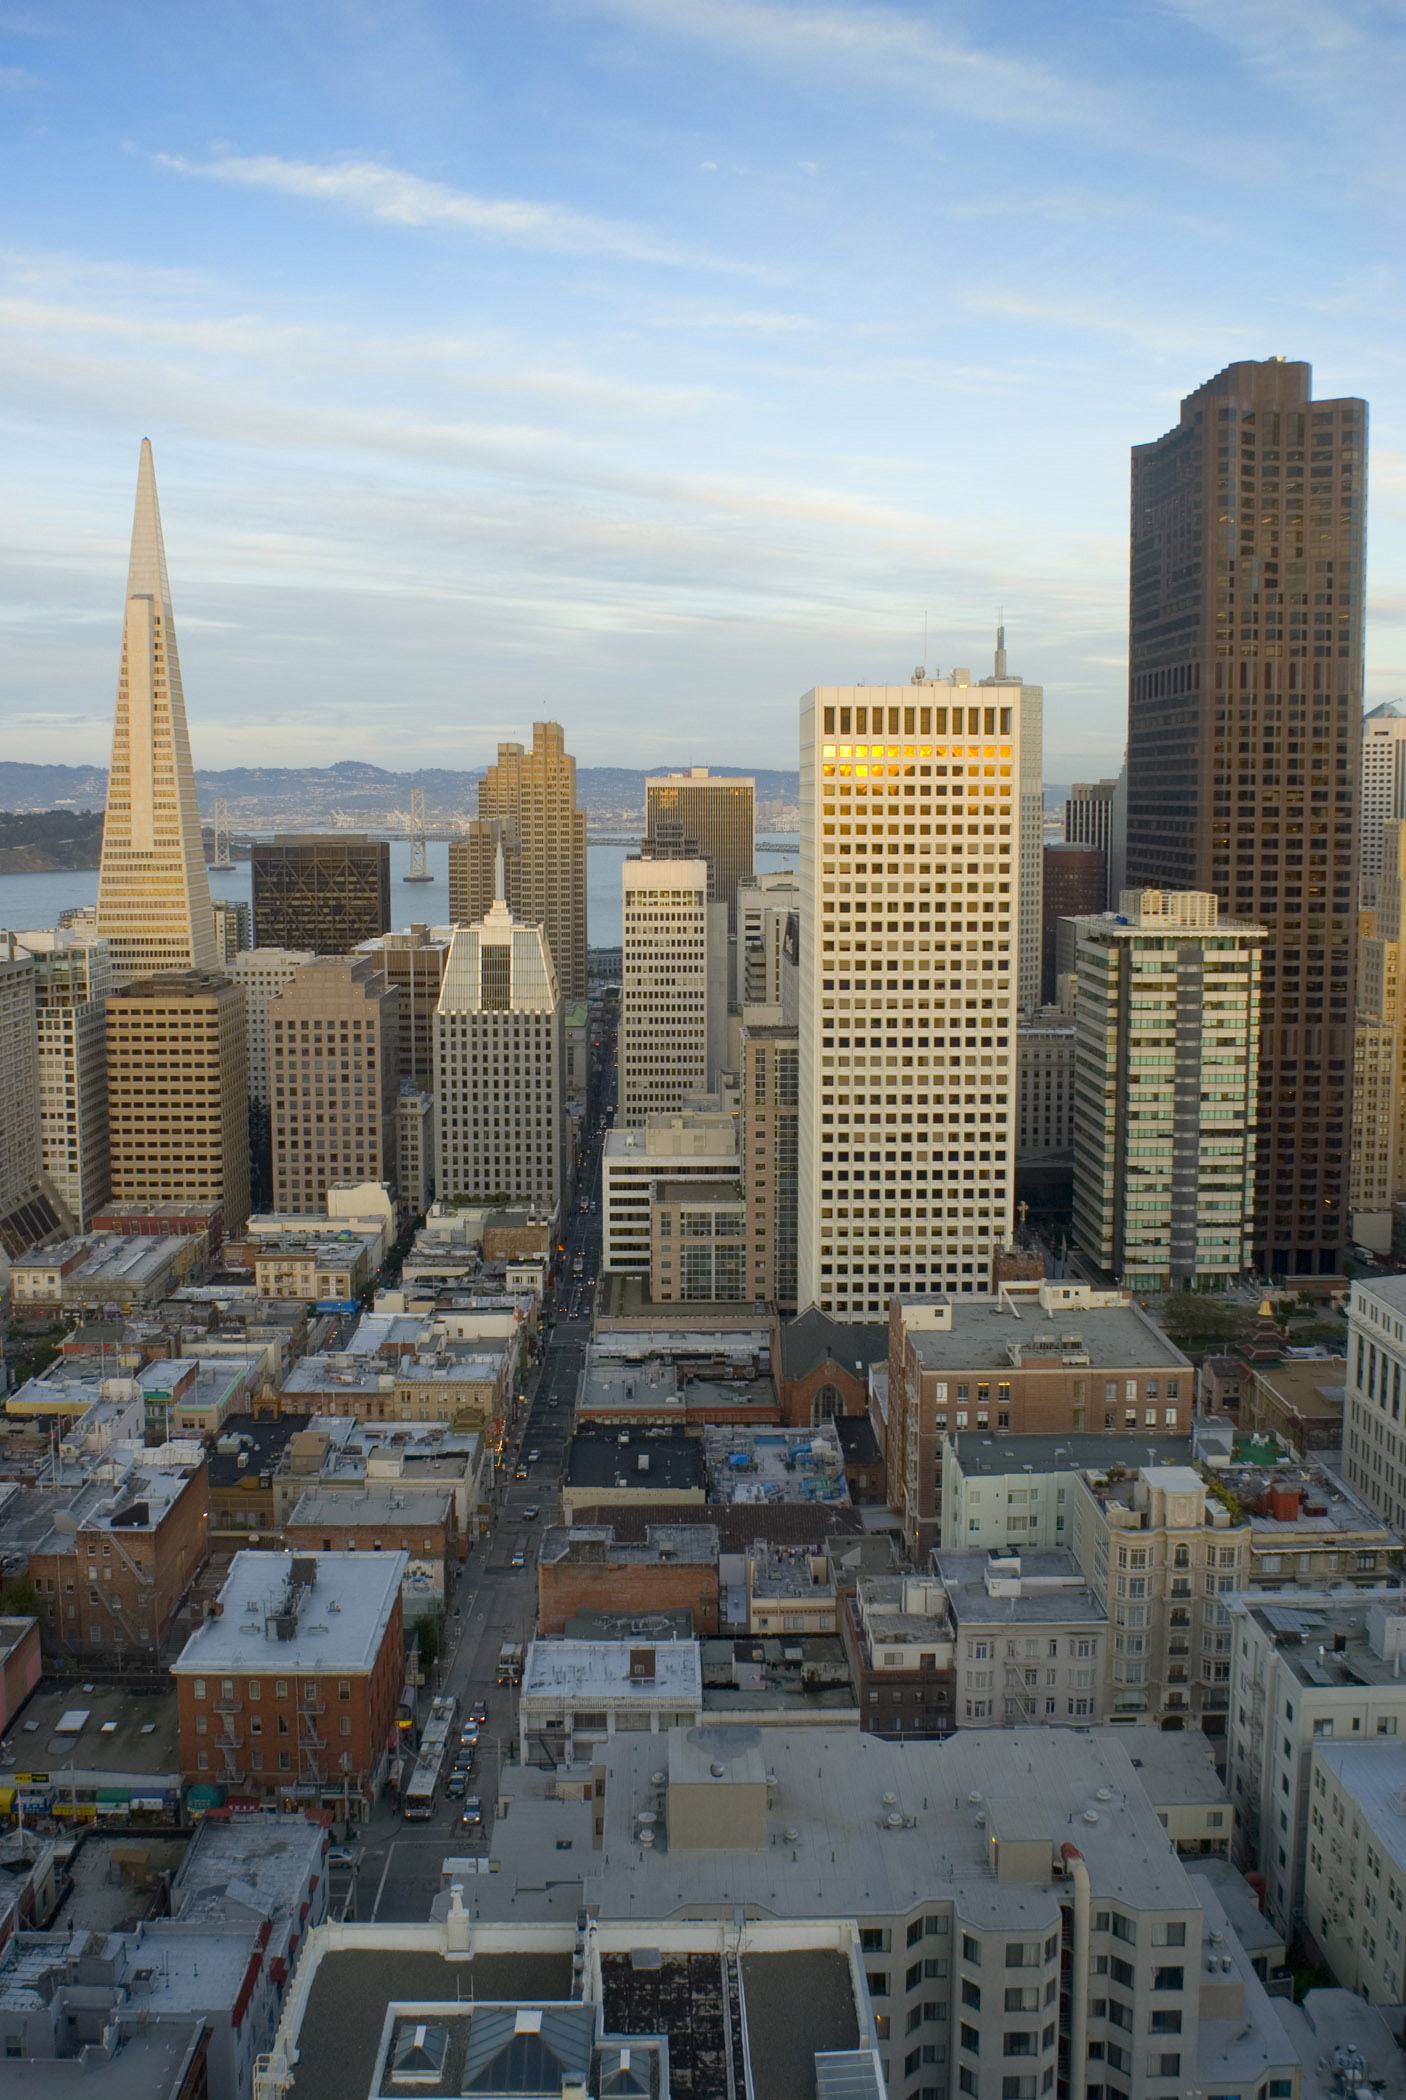 Architectural City Building Structures of San Francisco on Sunset in Aerial View.